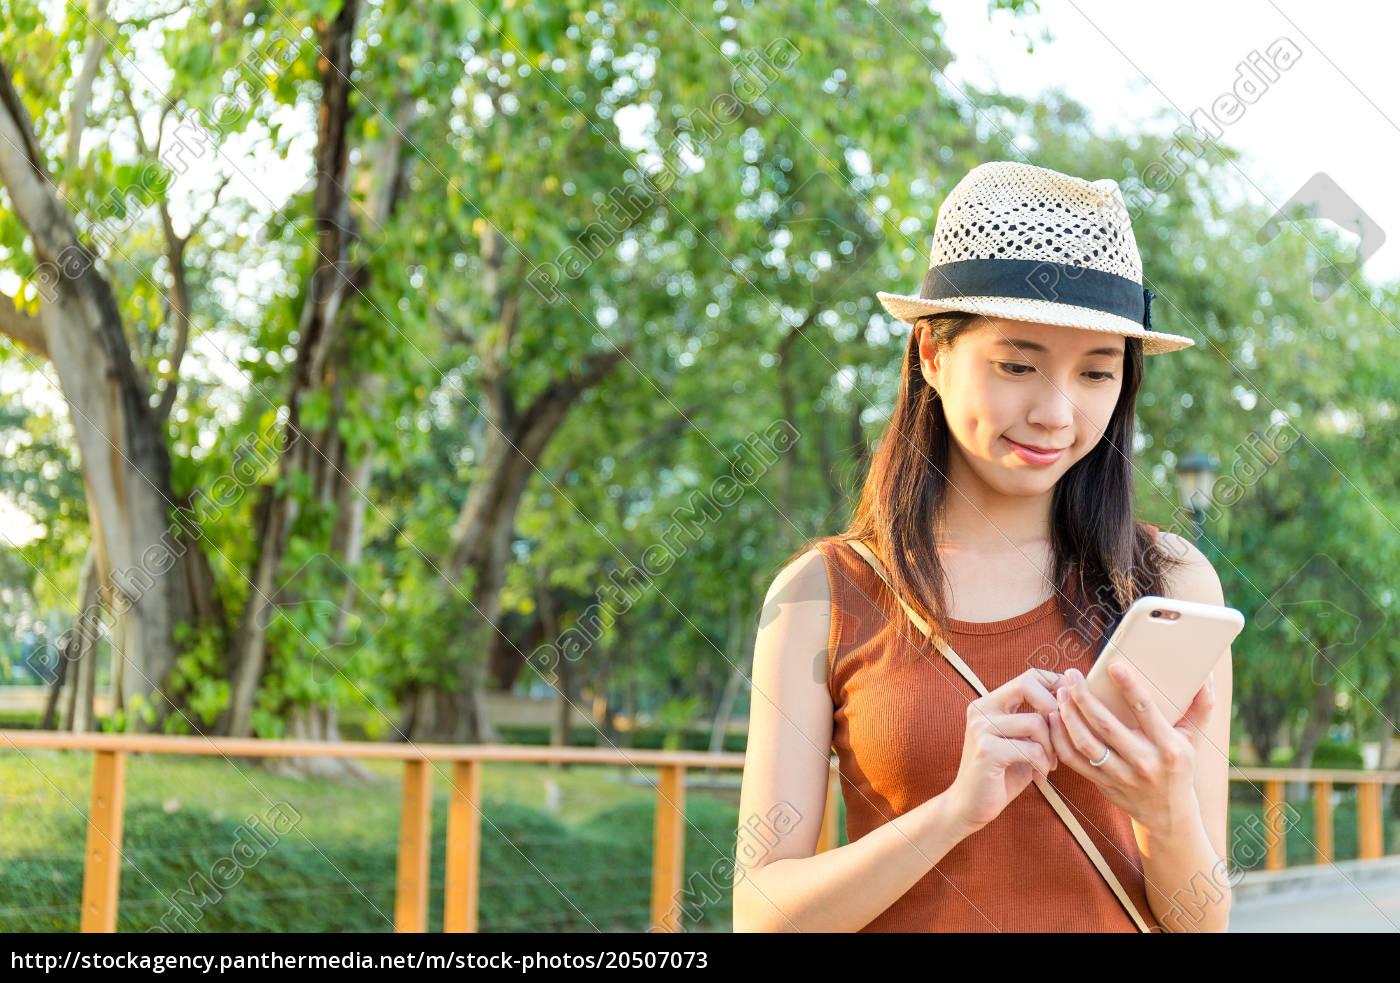 woman, using, mobile, phone, in, city - 20507073